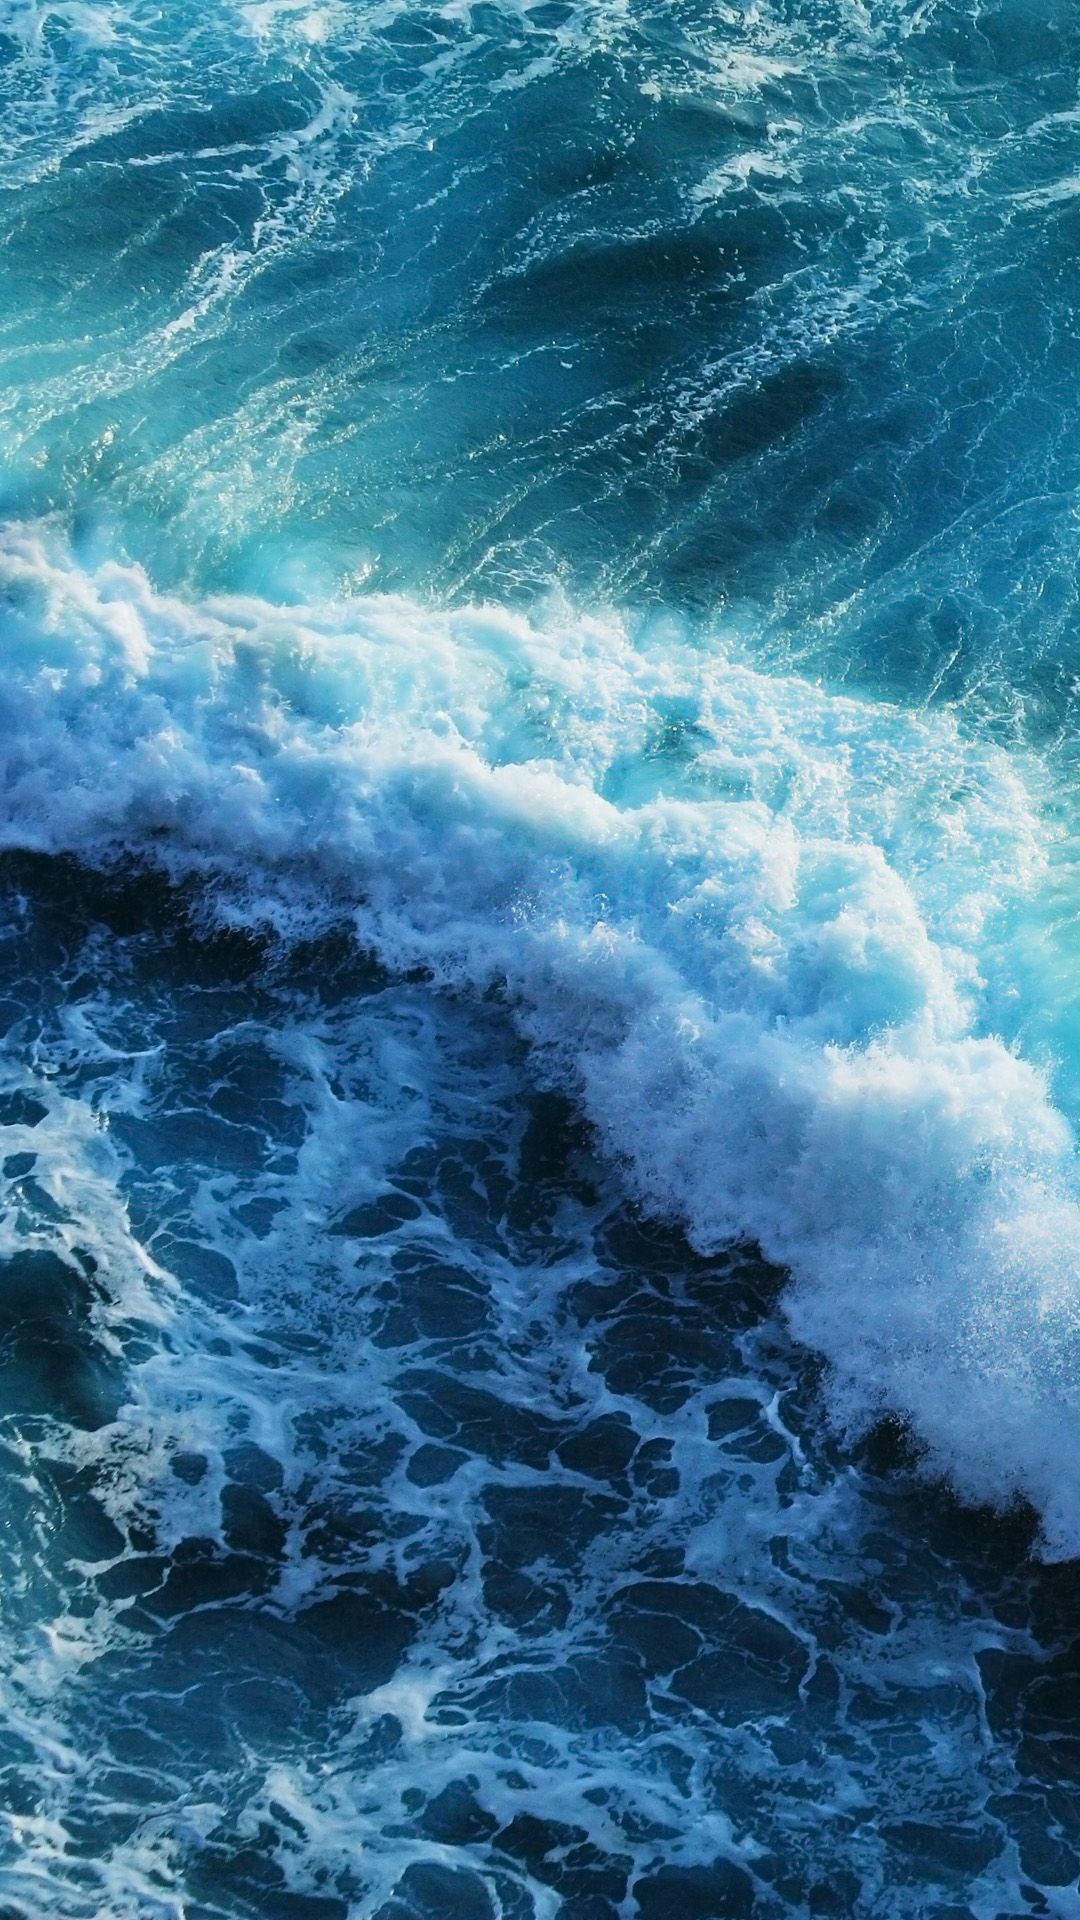 blue wallpaper iphone beautiful blue waves iphone 6 plus wallpaper wallpaper 10295